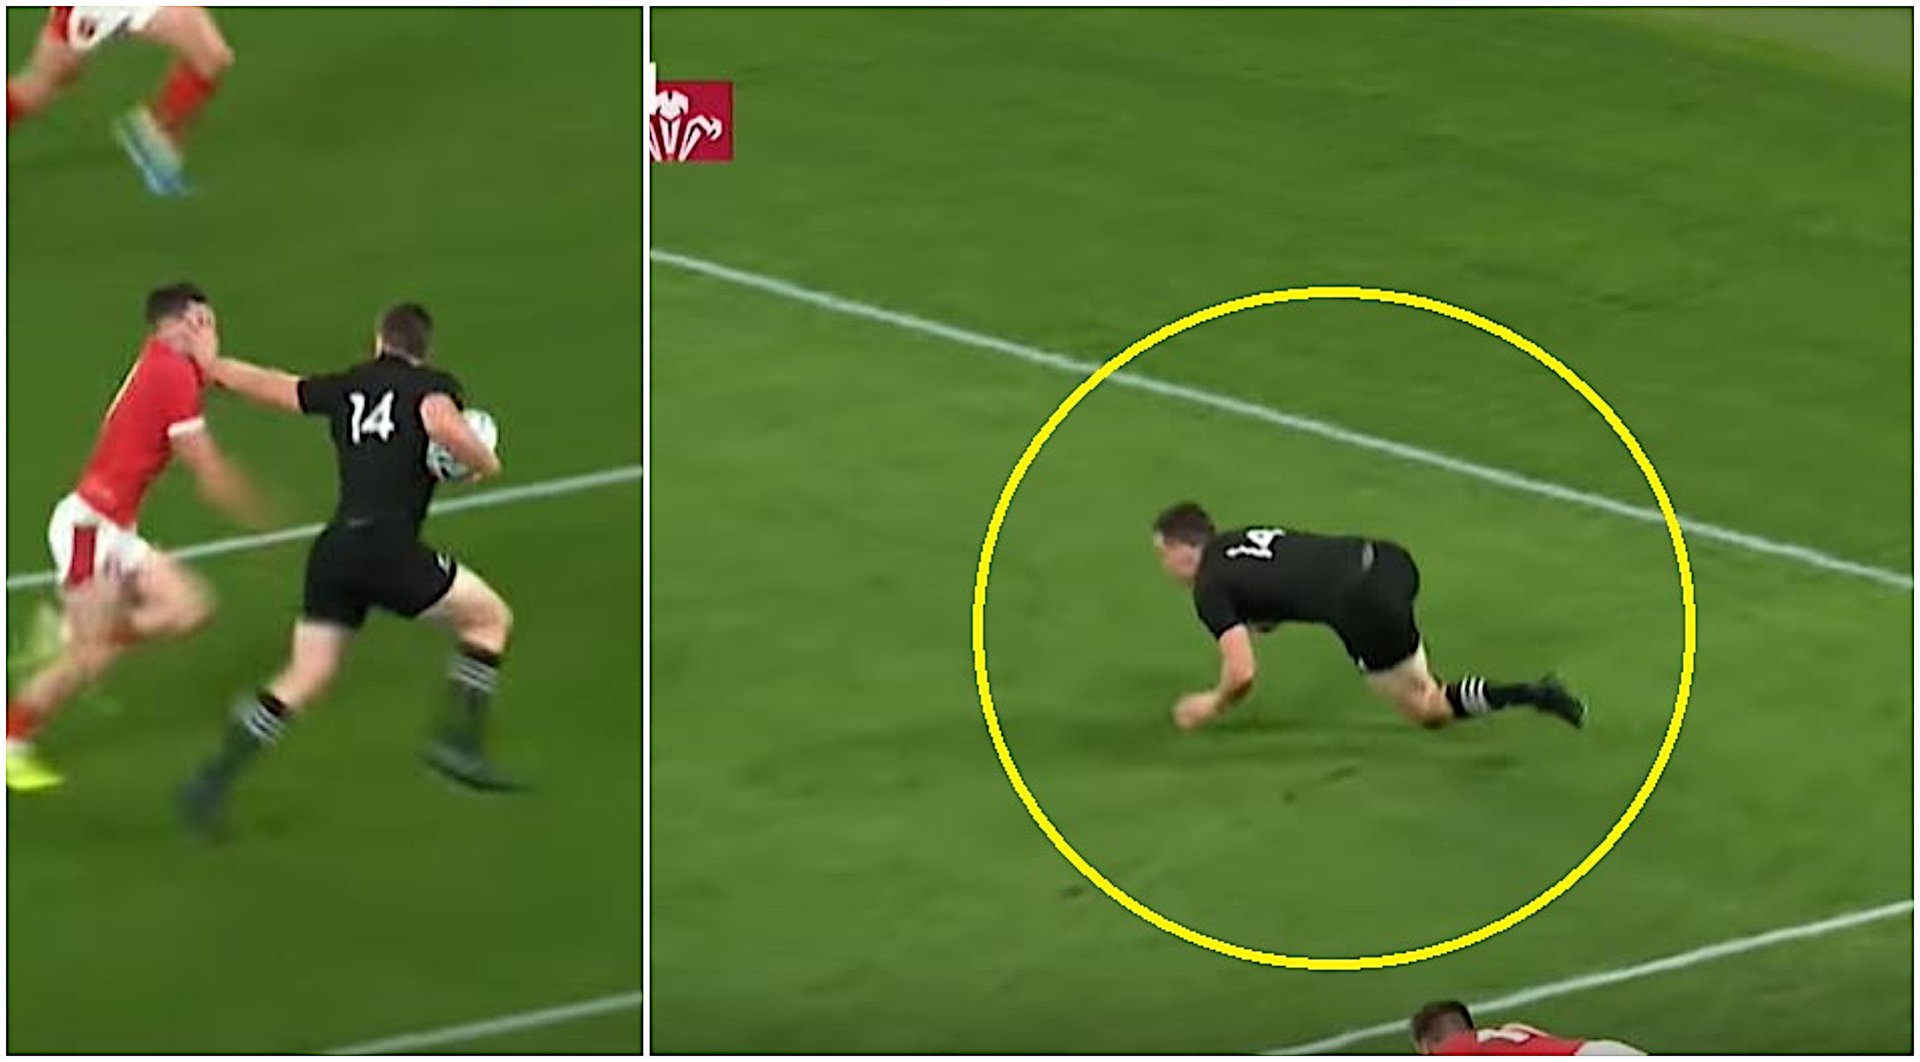 Ben Smith might in trouble for this questionable incident